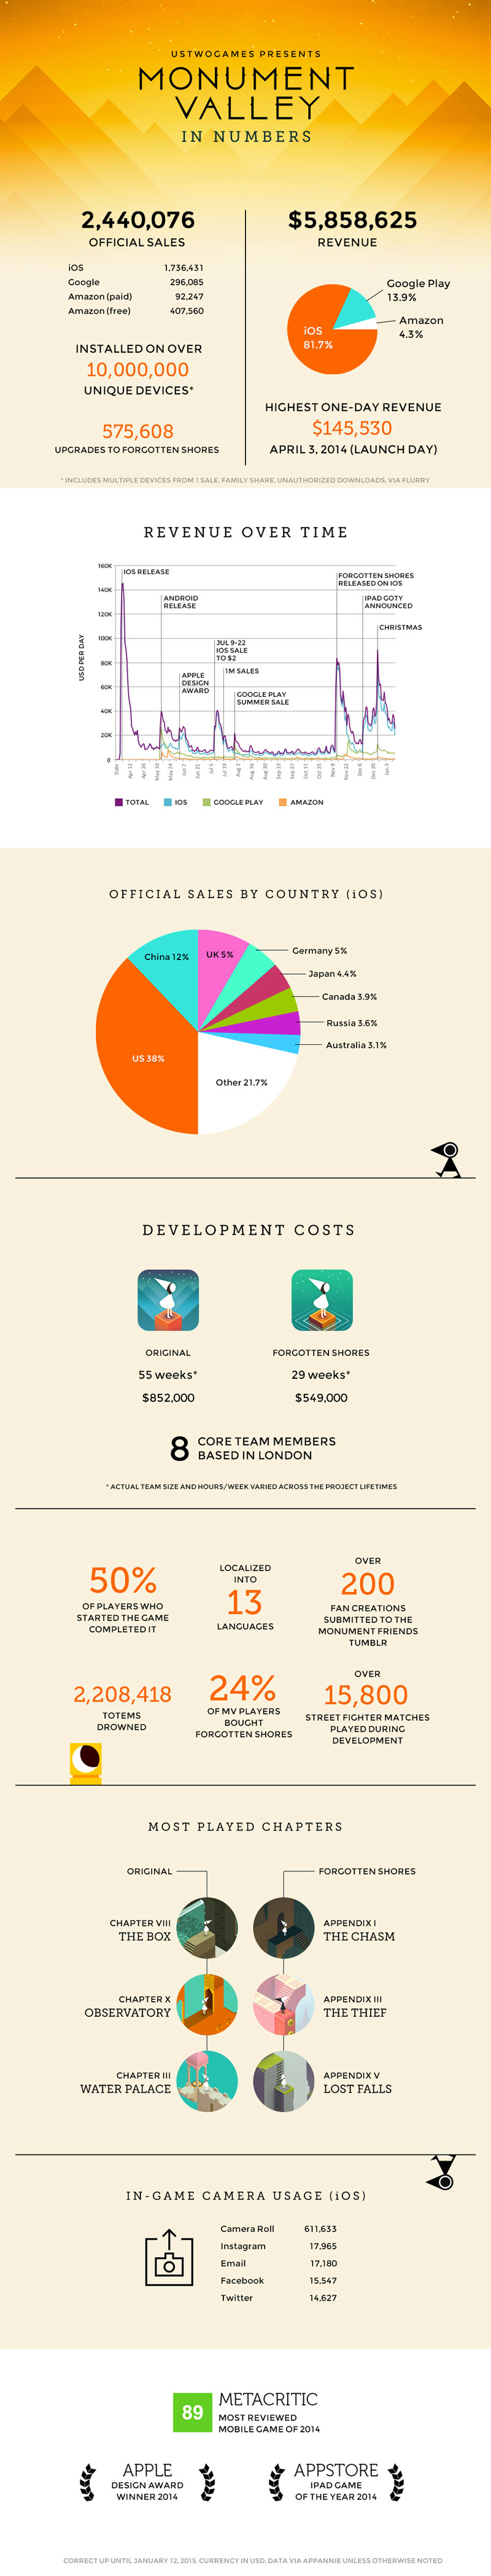 monument_valley_infographic